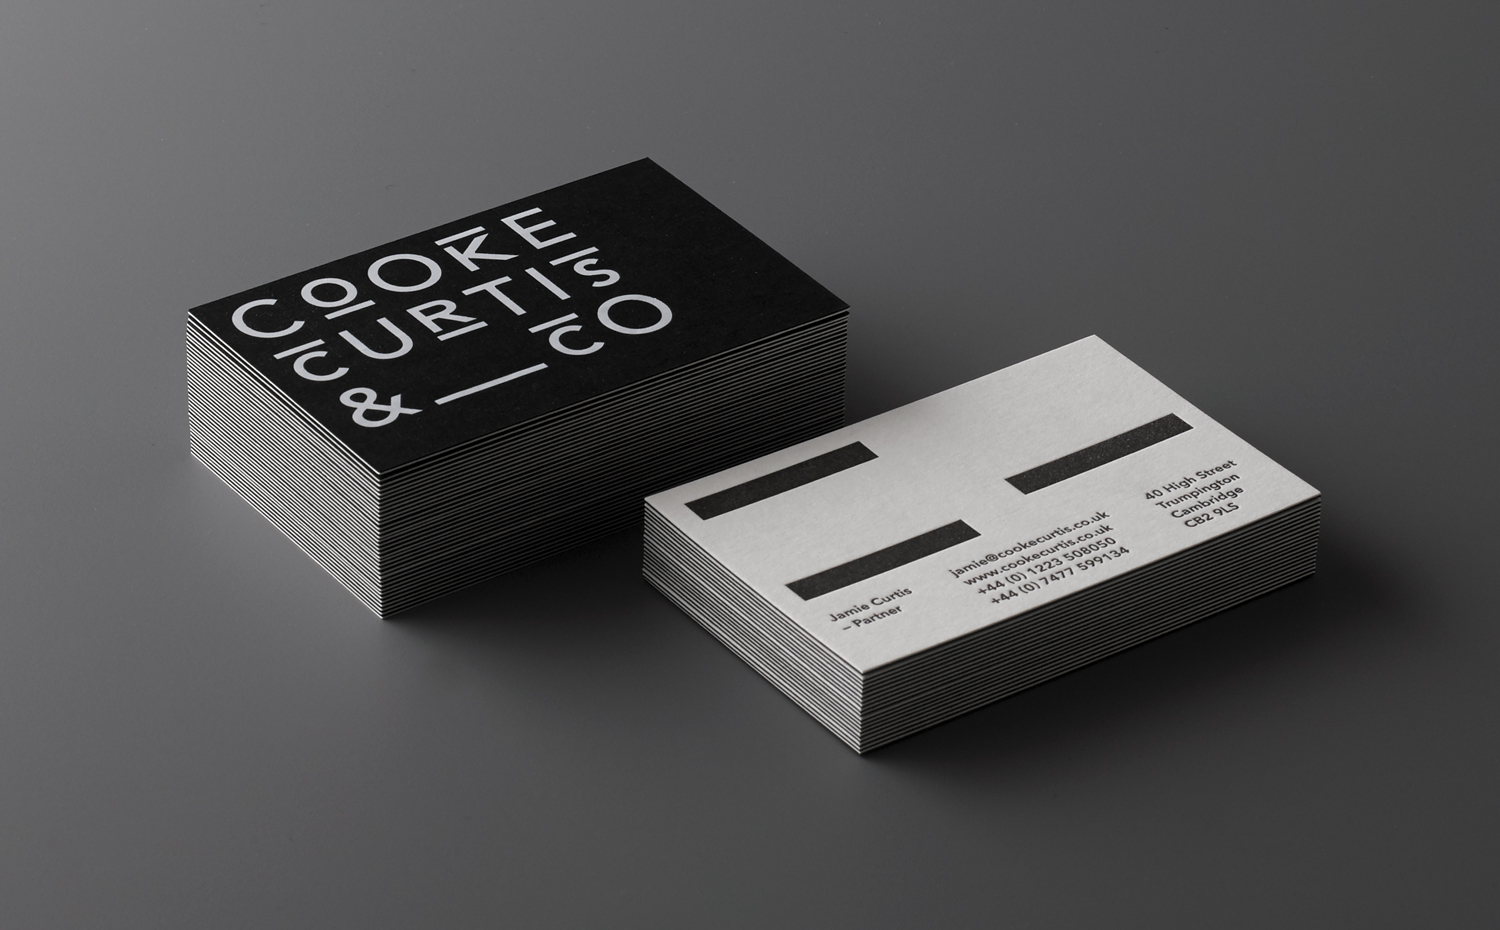 Duplex letterpress business cards for Cooke Curtis & Co. designed by The District